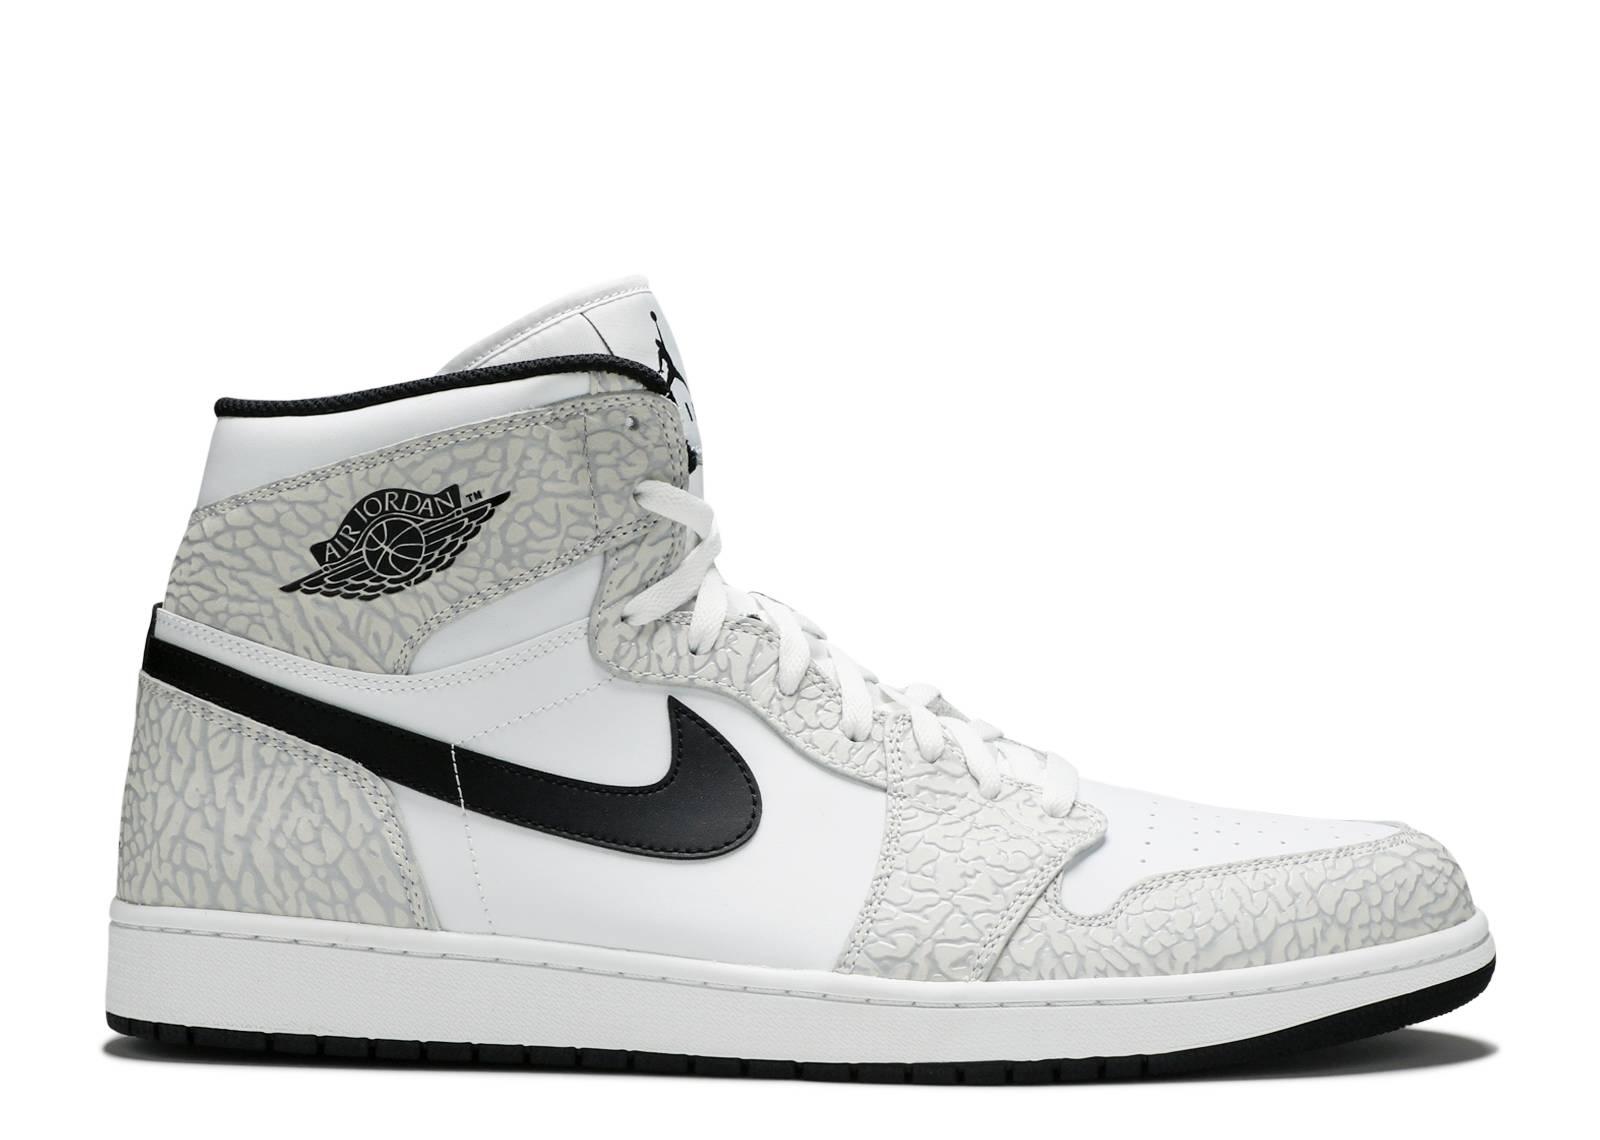 low priced e6291 44216 air jordan 1 retro high